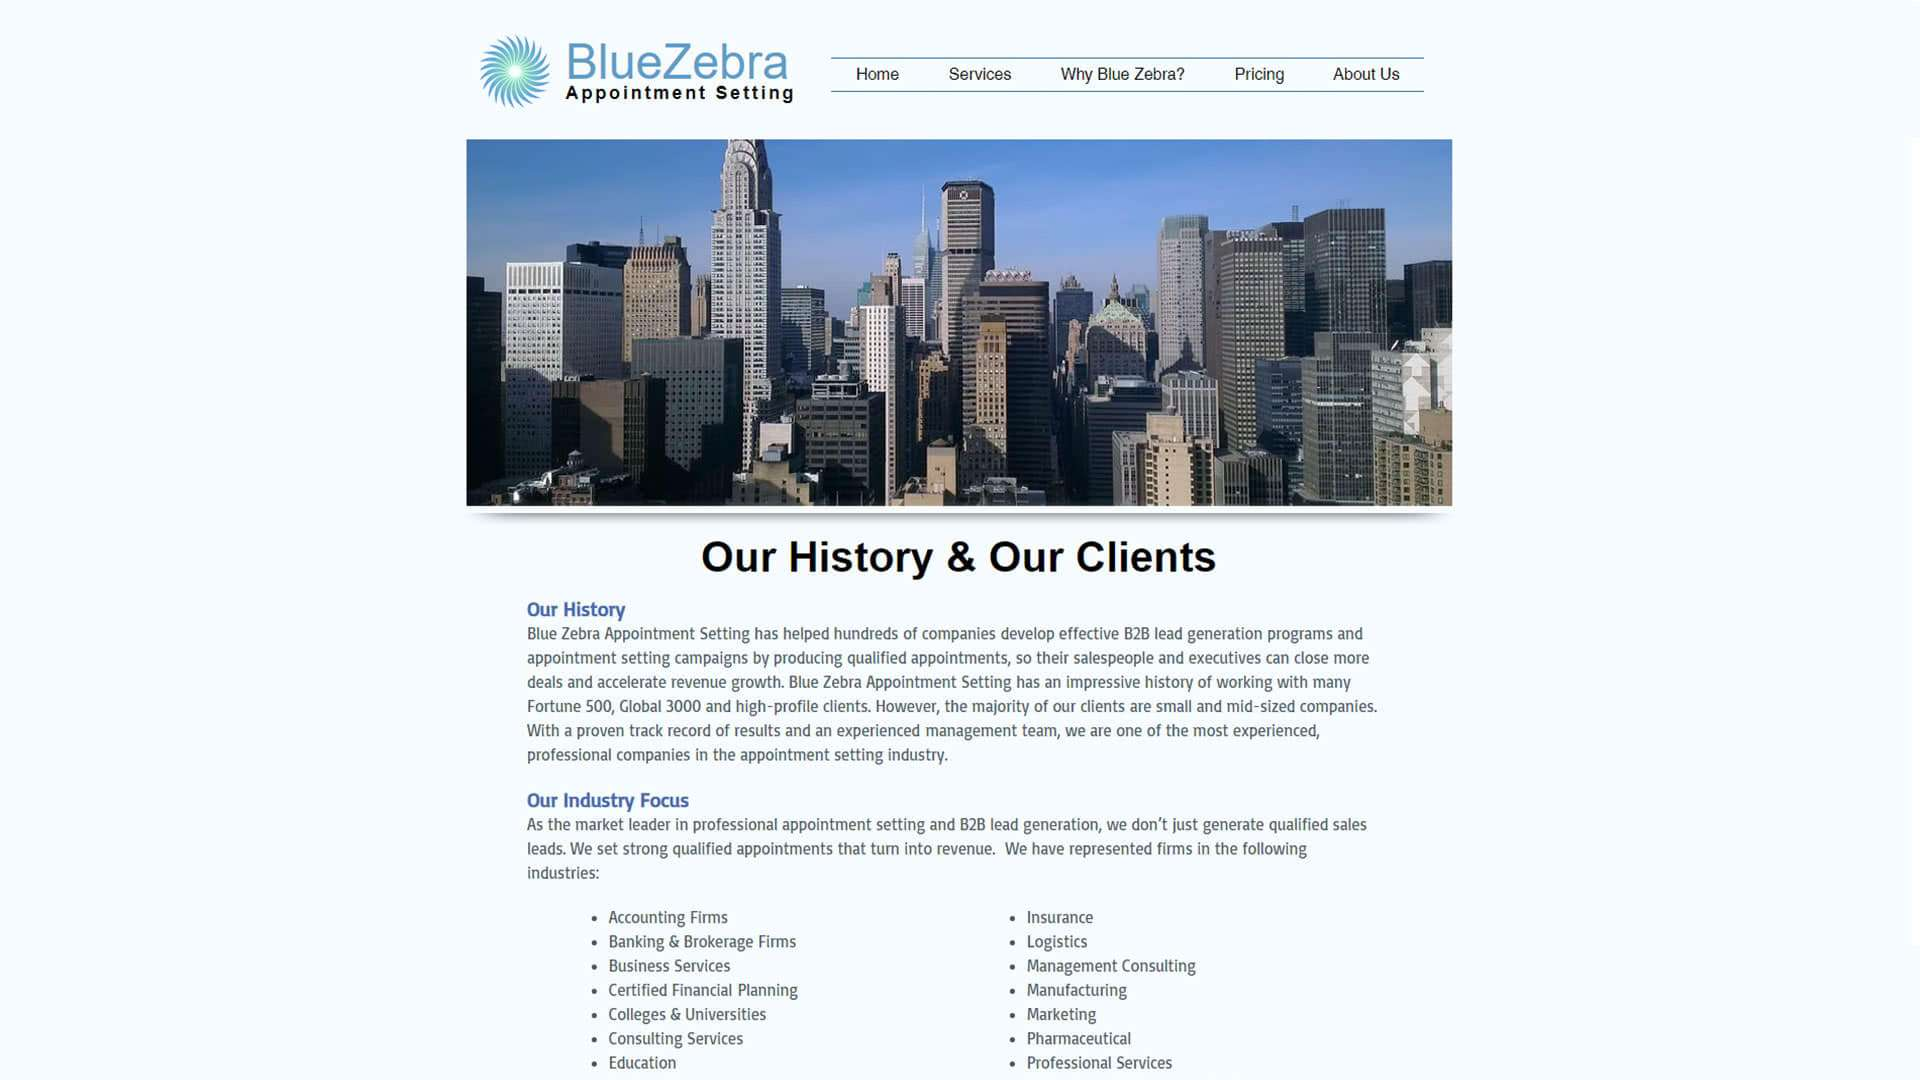 blue-zebra-appointment-setting-our-history-and-clients